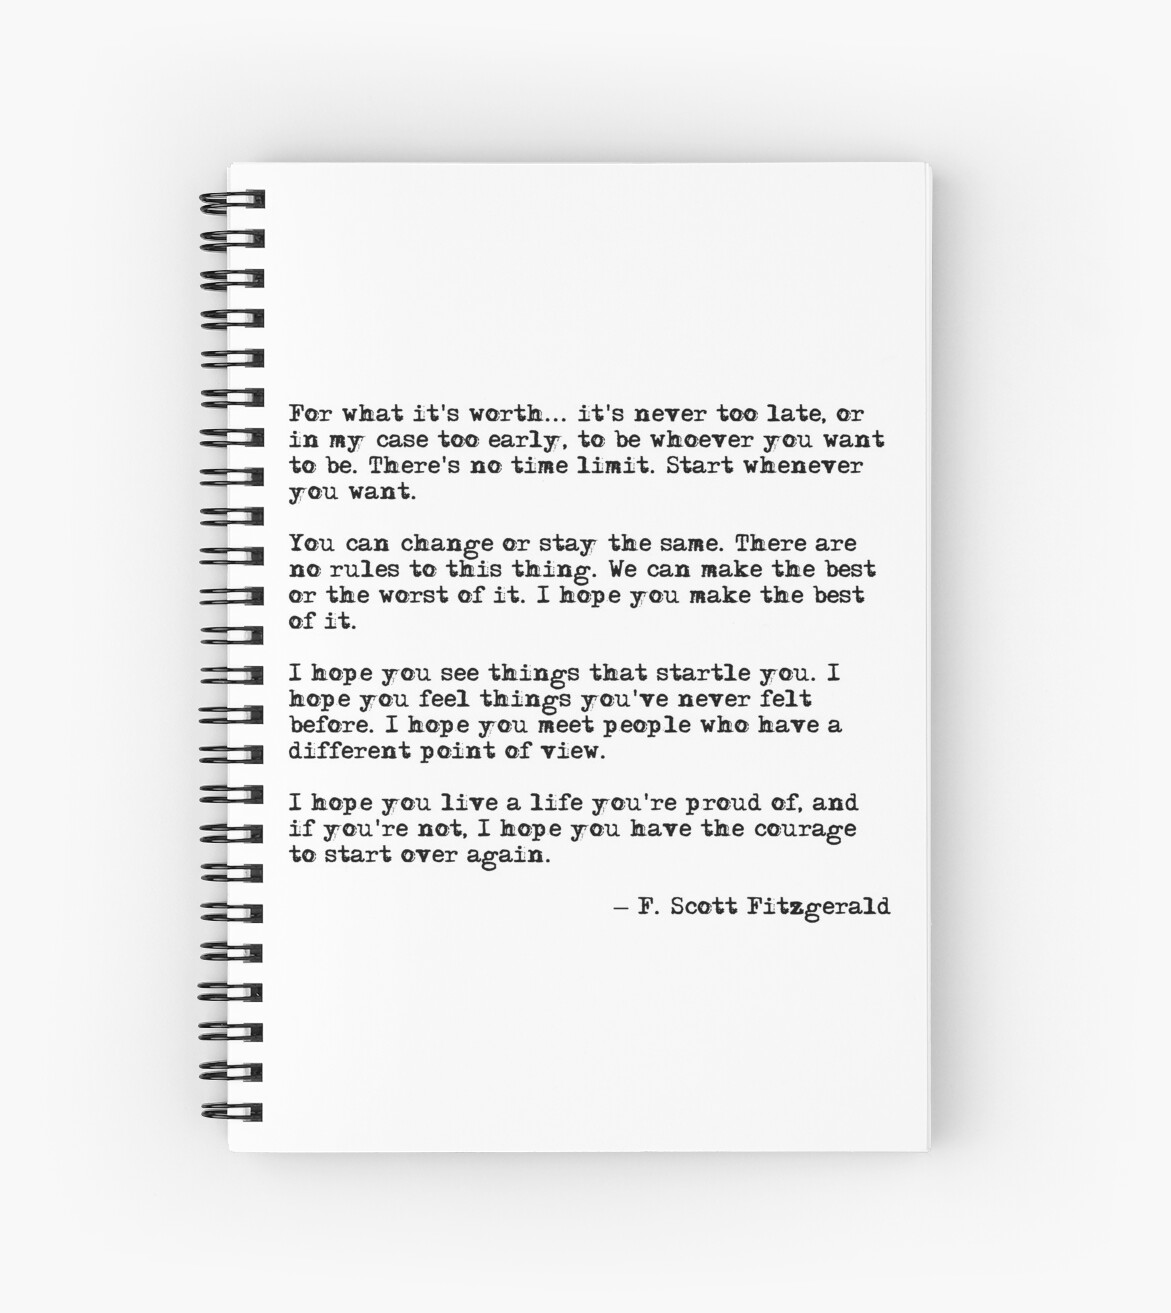 For What Its Worth F Scott Fitzgerald Quote Spiral Notebooks By